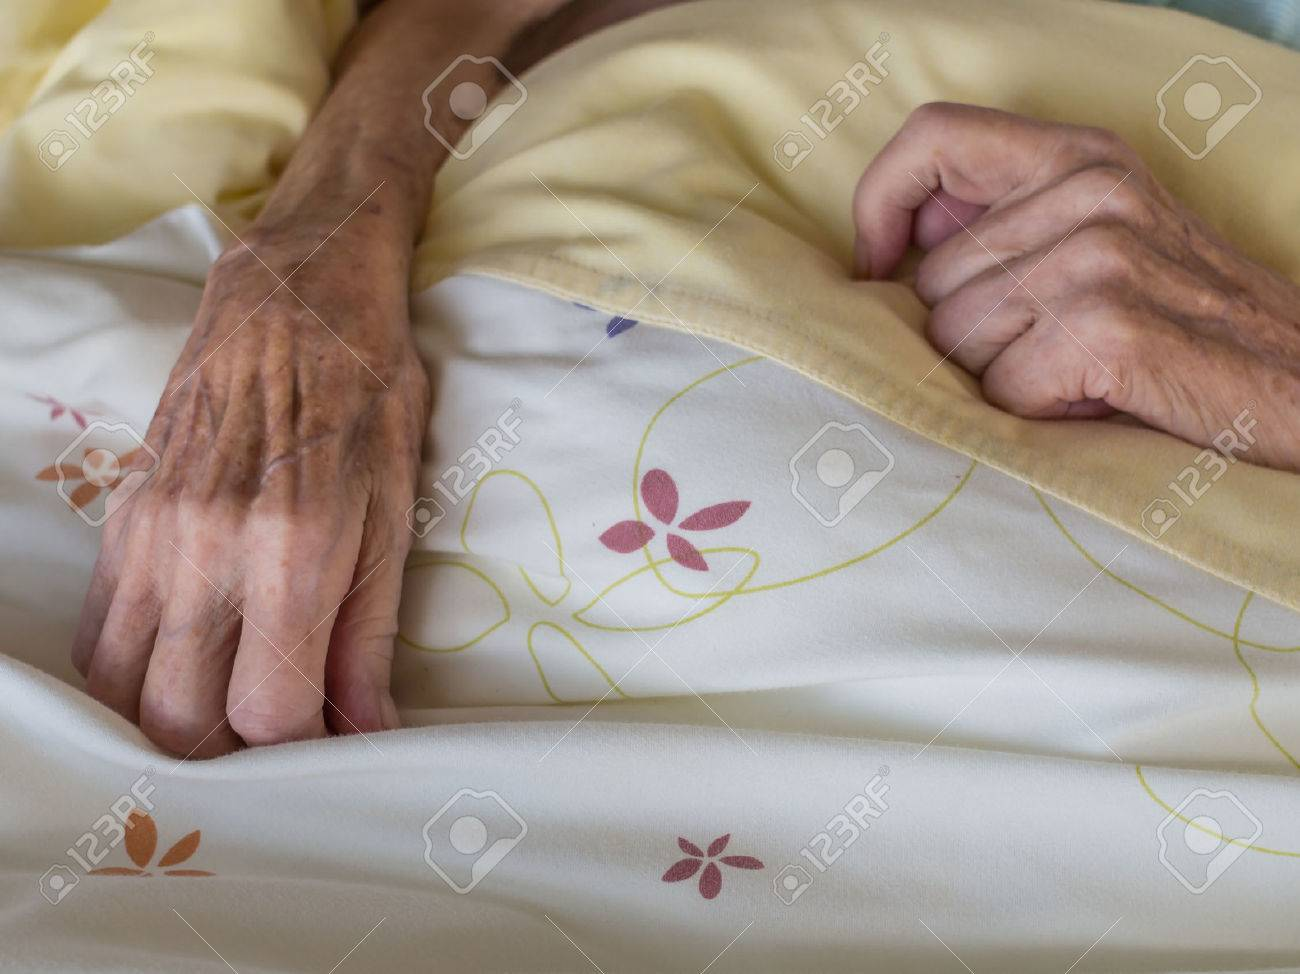 The hands of a very old and skinny woman in bed Stock Photo - 30984884